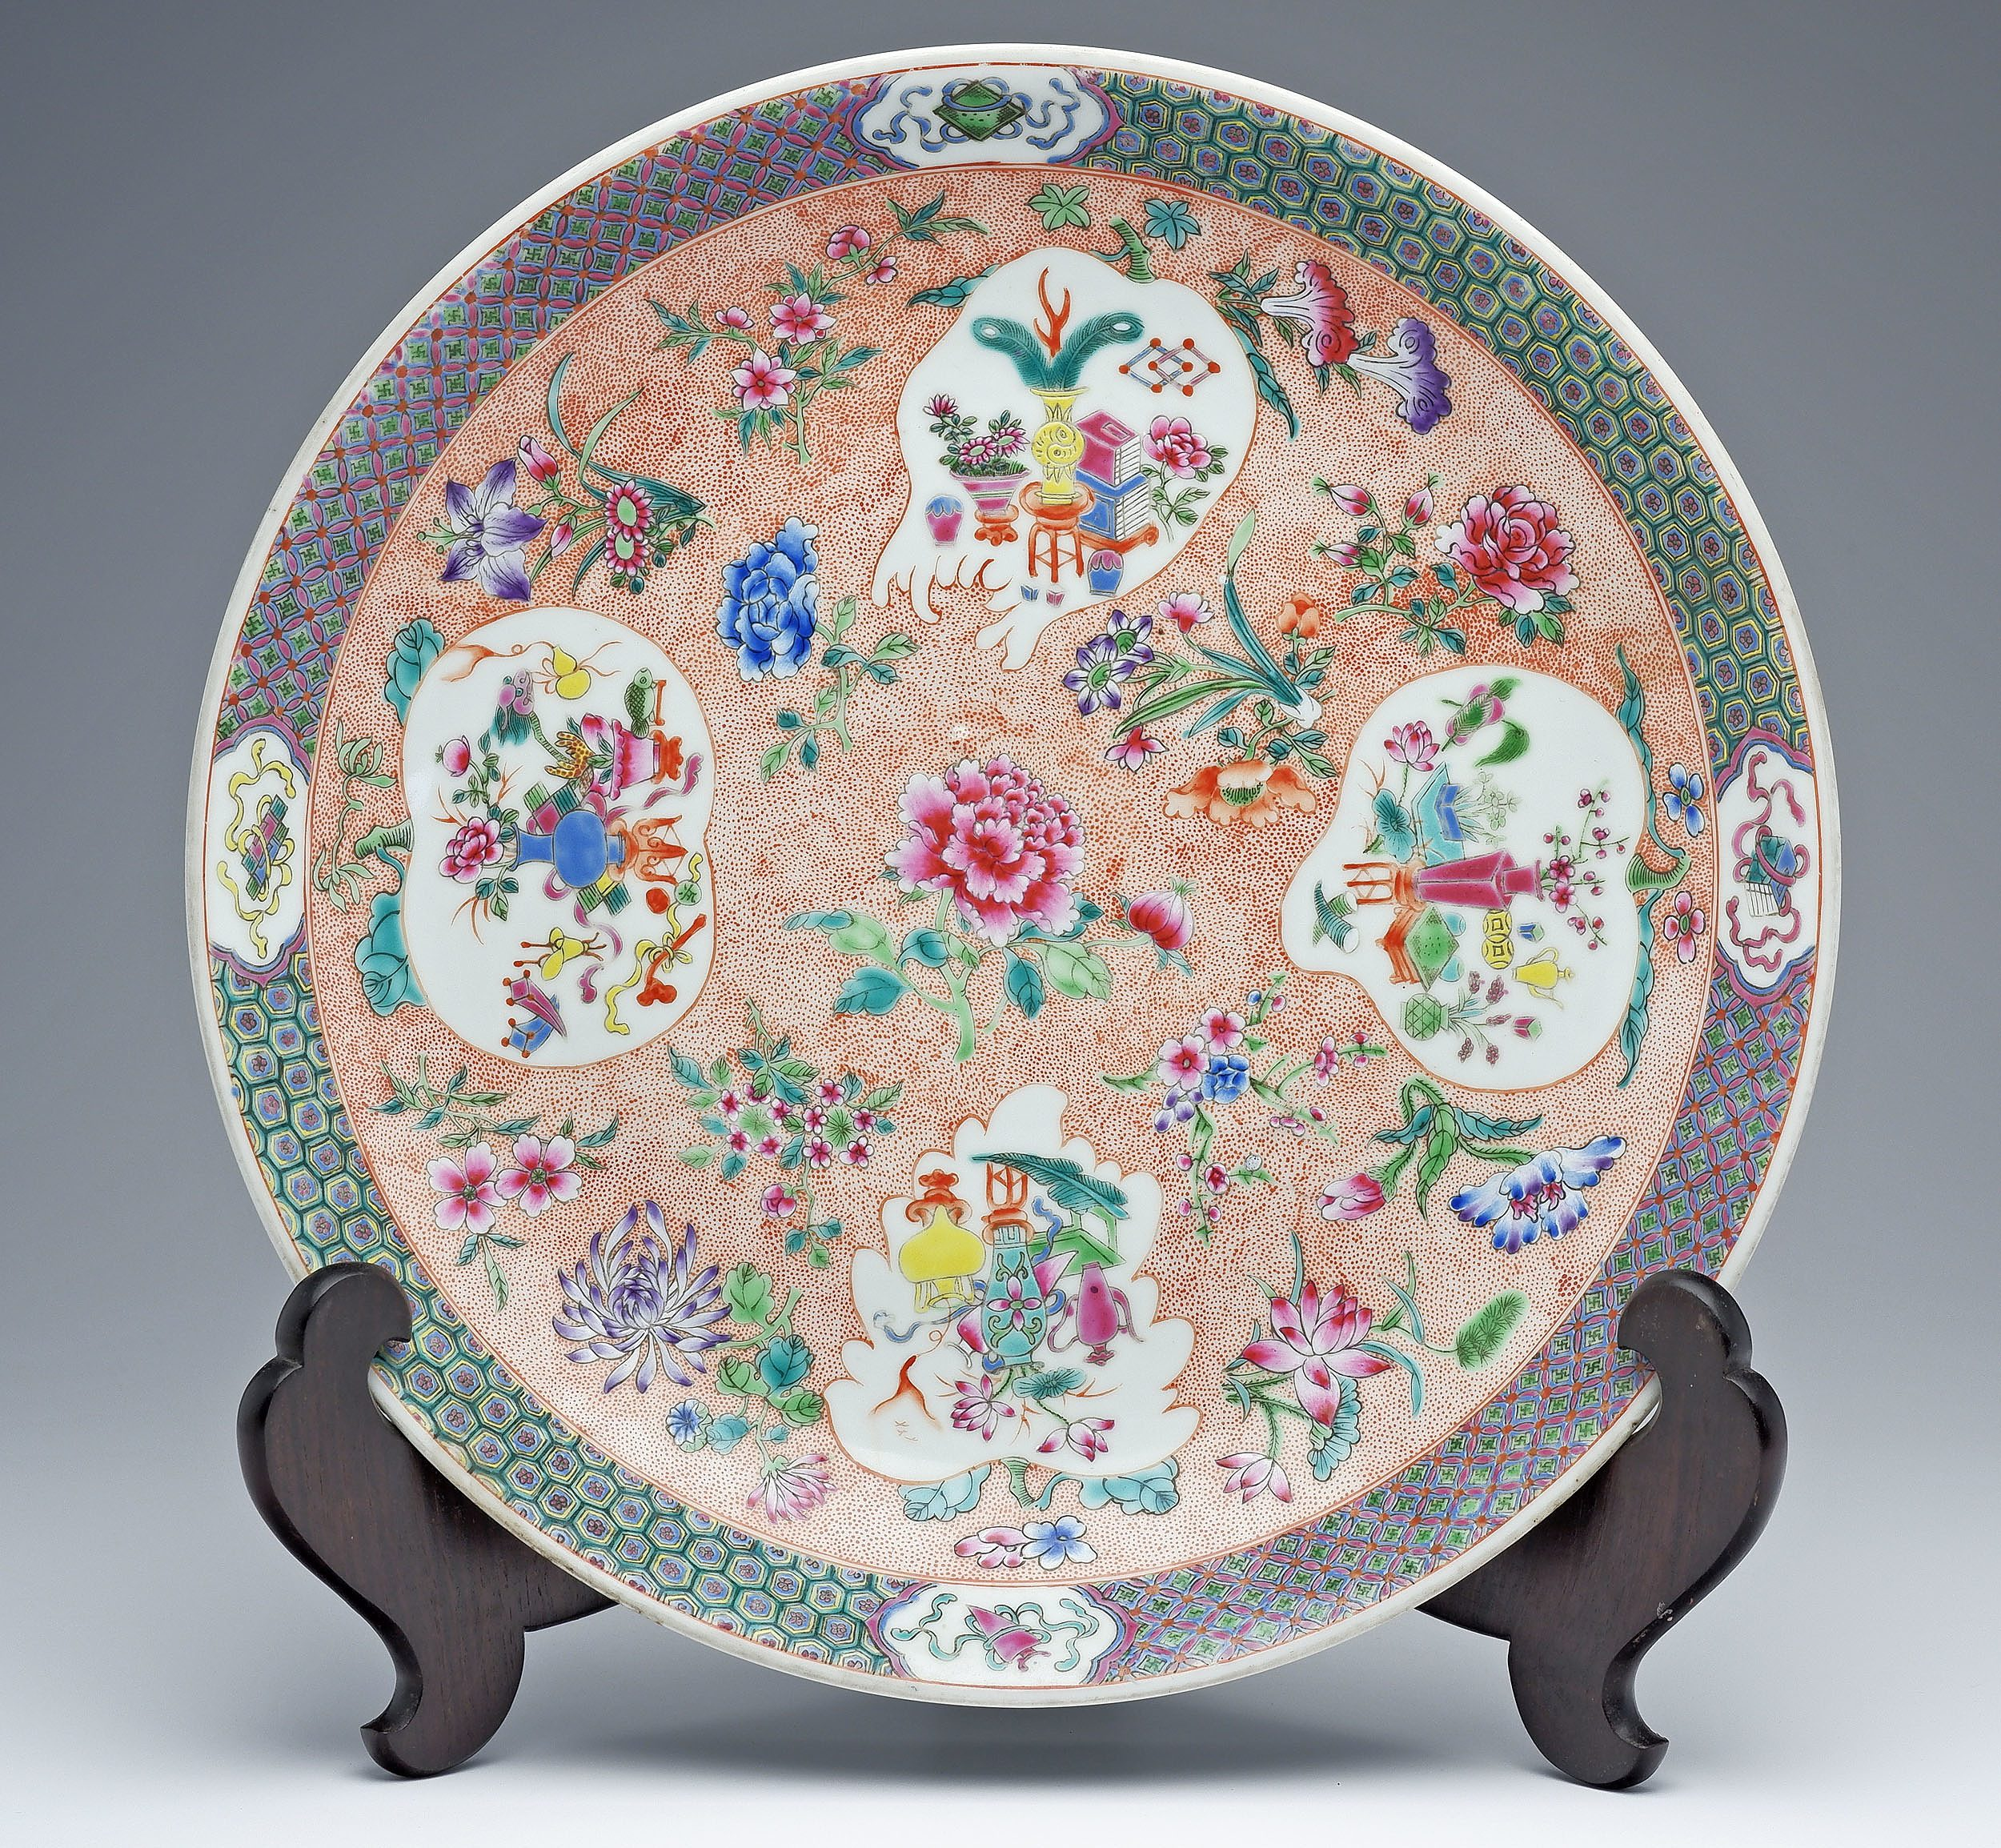 'Large Chinese Famille Rose Dish, Apocryphal Qianlong Mark, Late Qing or Republic Period'